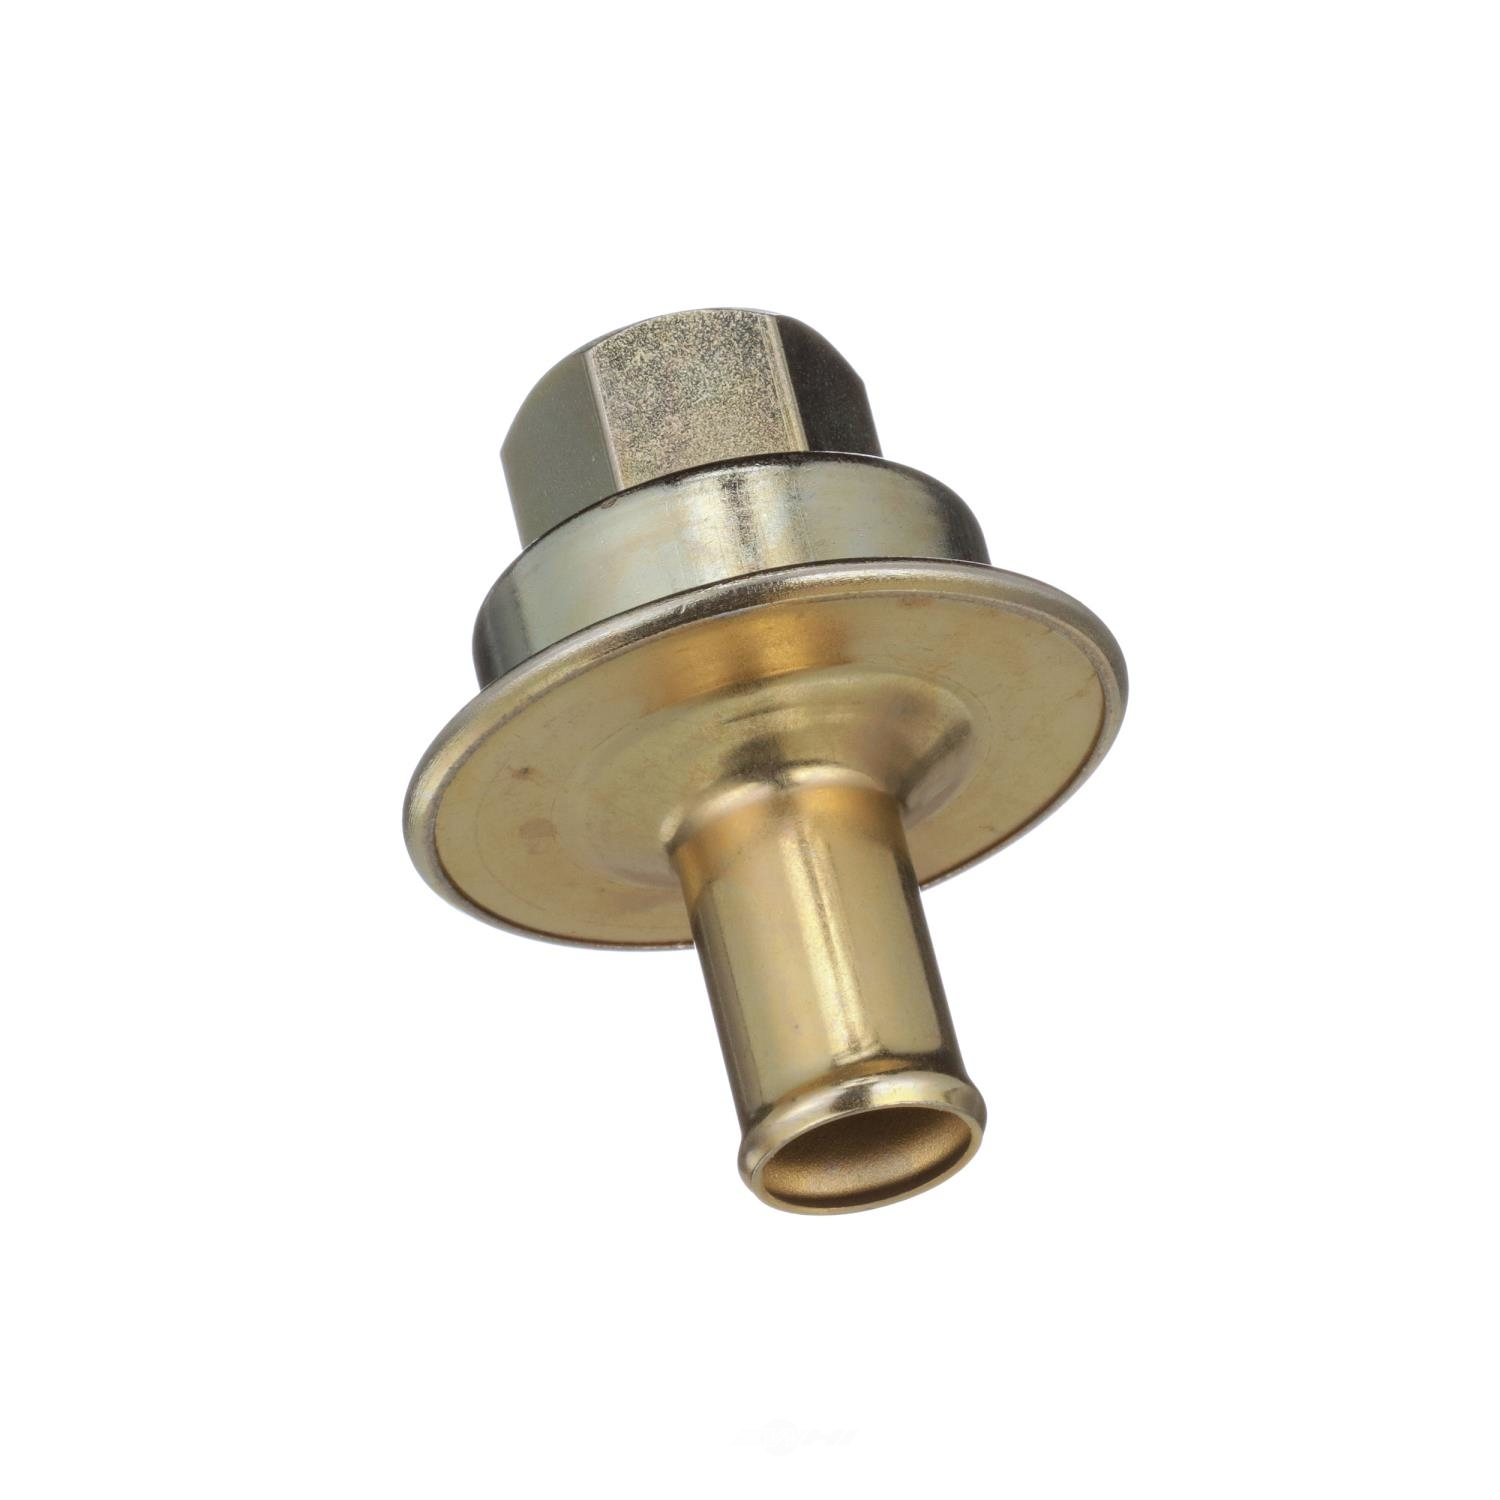 STANDARD MOTOR PRODUCTS - Secondary Air Injection Pump Check Valve - STA AV7